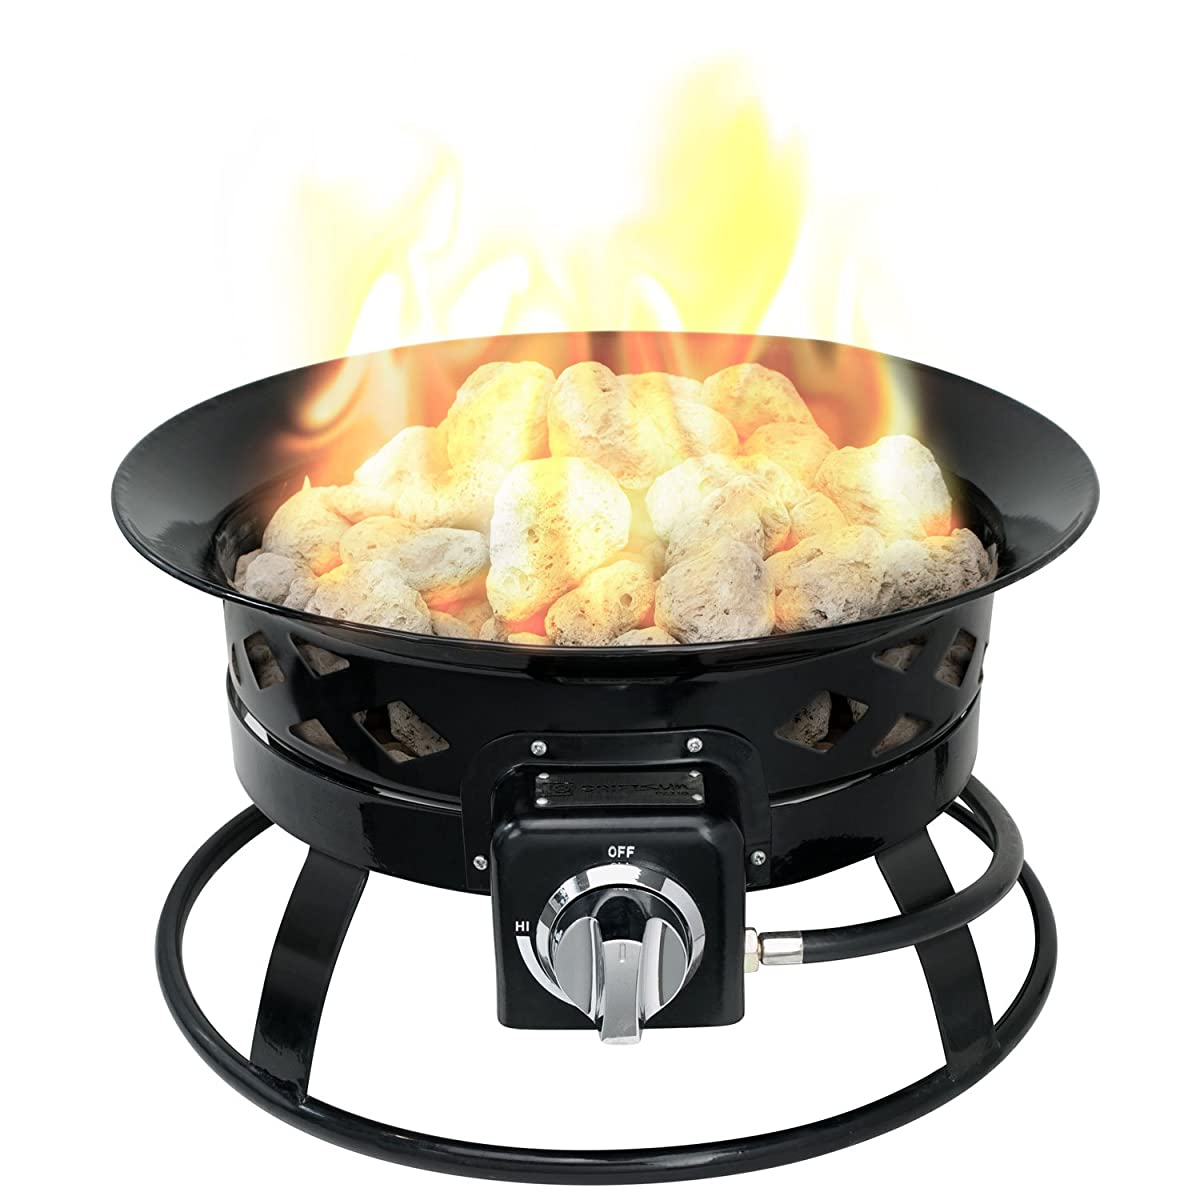 "Sunward Patio Portable Outdoor 58,000 BTU Propane Fire Pit / 19"" Fire bowl / Lava Rocks, Carry Handle, Lid and Weather Resistant Bag Included!"